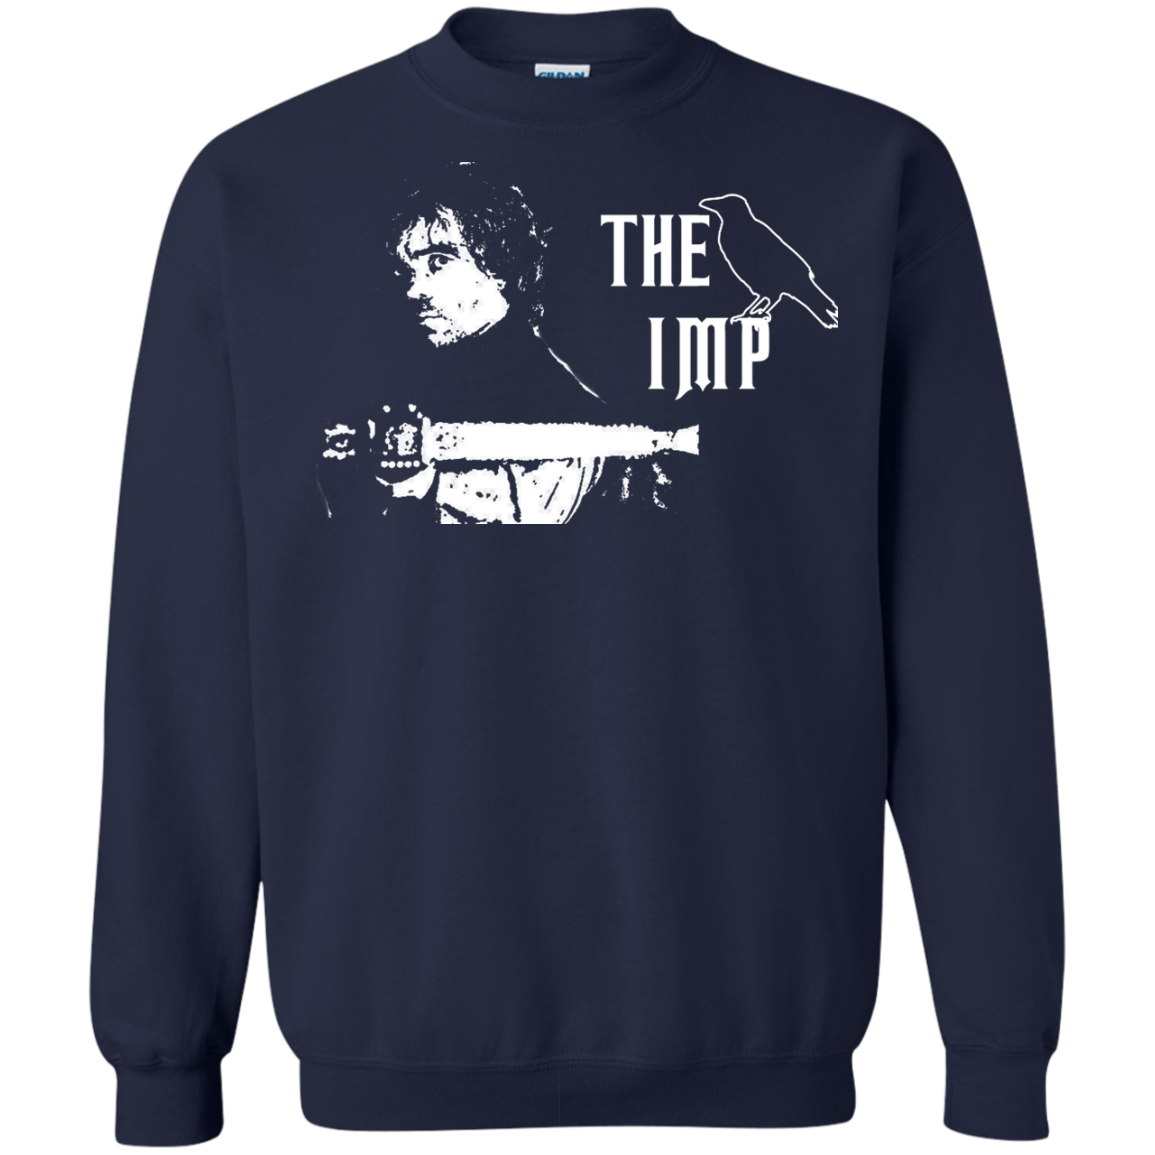 The Imp Tyrion Lannister Game Of Thrones T shirts Hoodies Gifts Clothing Items - Blue Fox